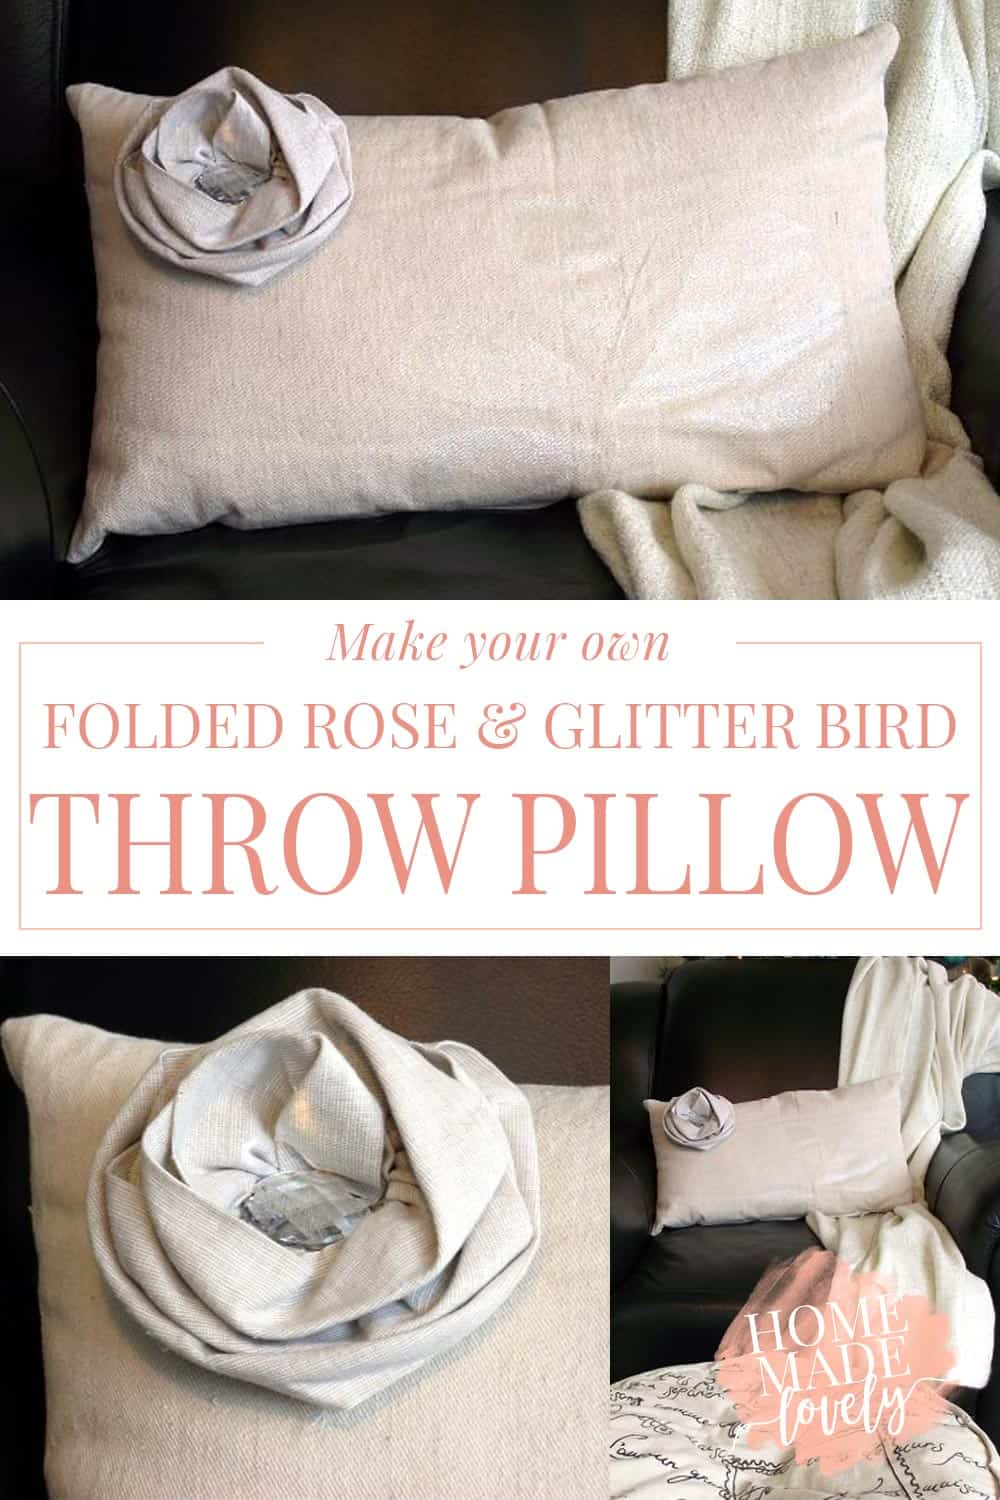 Make your own DIY folded rose and glitter bird pillow from some canvas drop cloth and a little imagination.